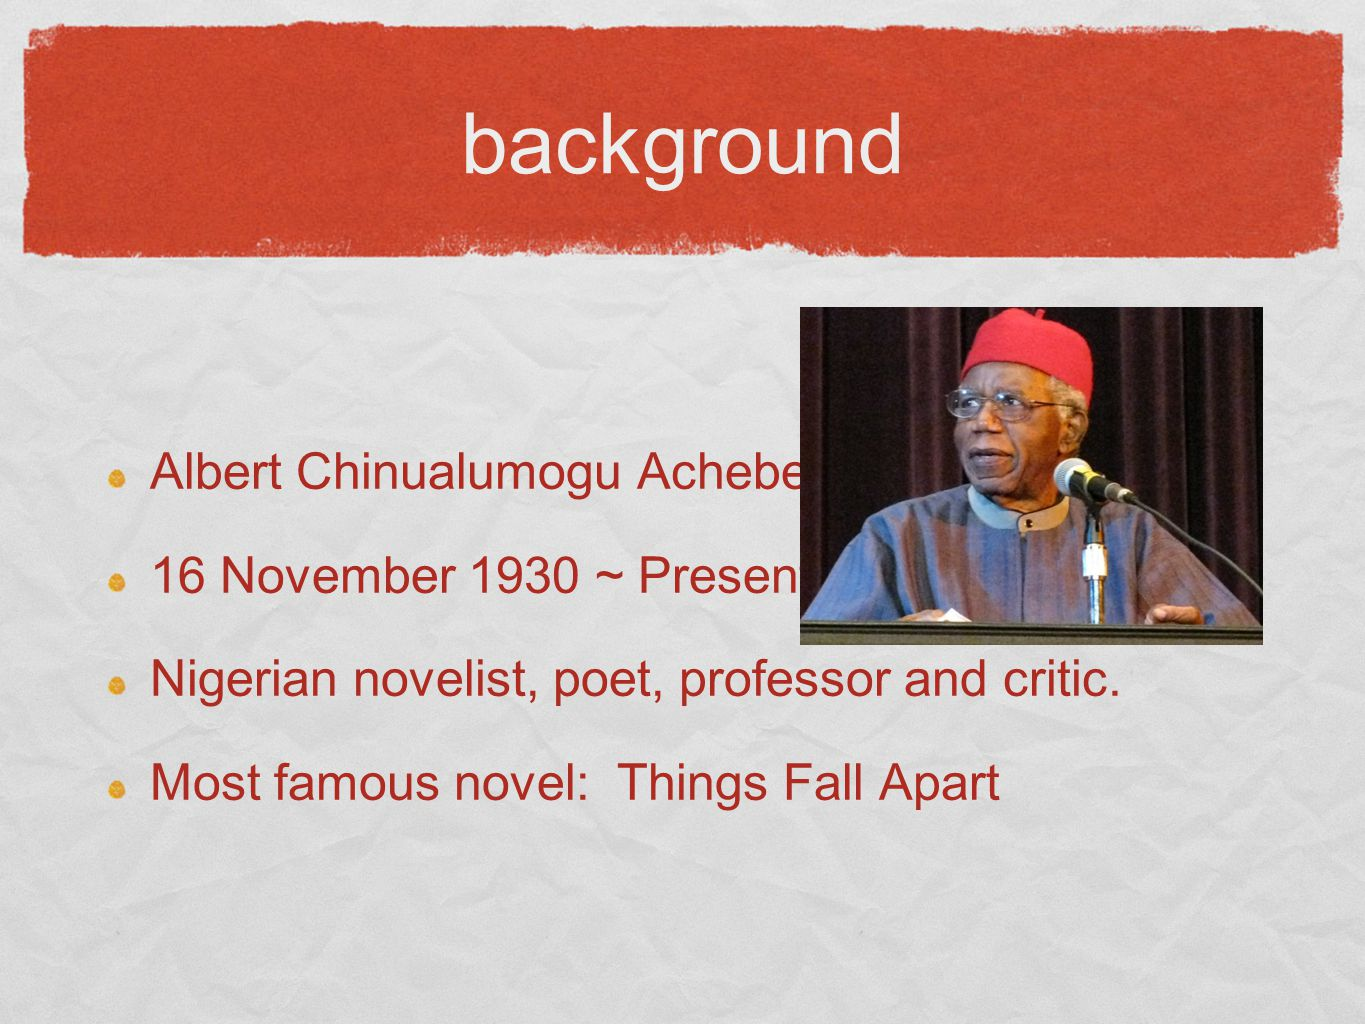 discussion Why do you think Achebe's books receieved so much attention rather than other books?